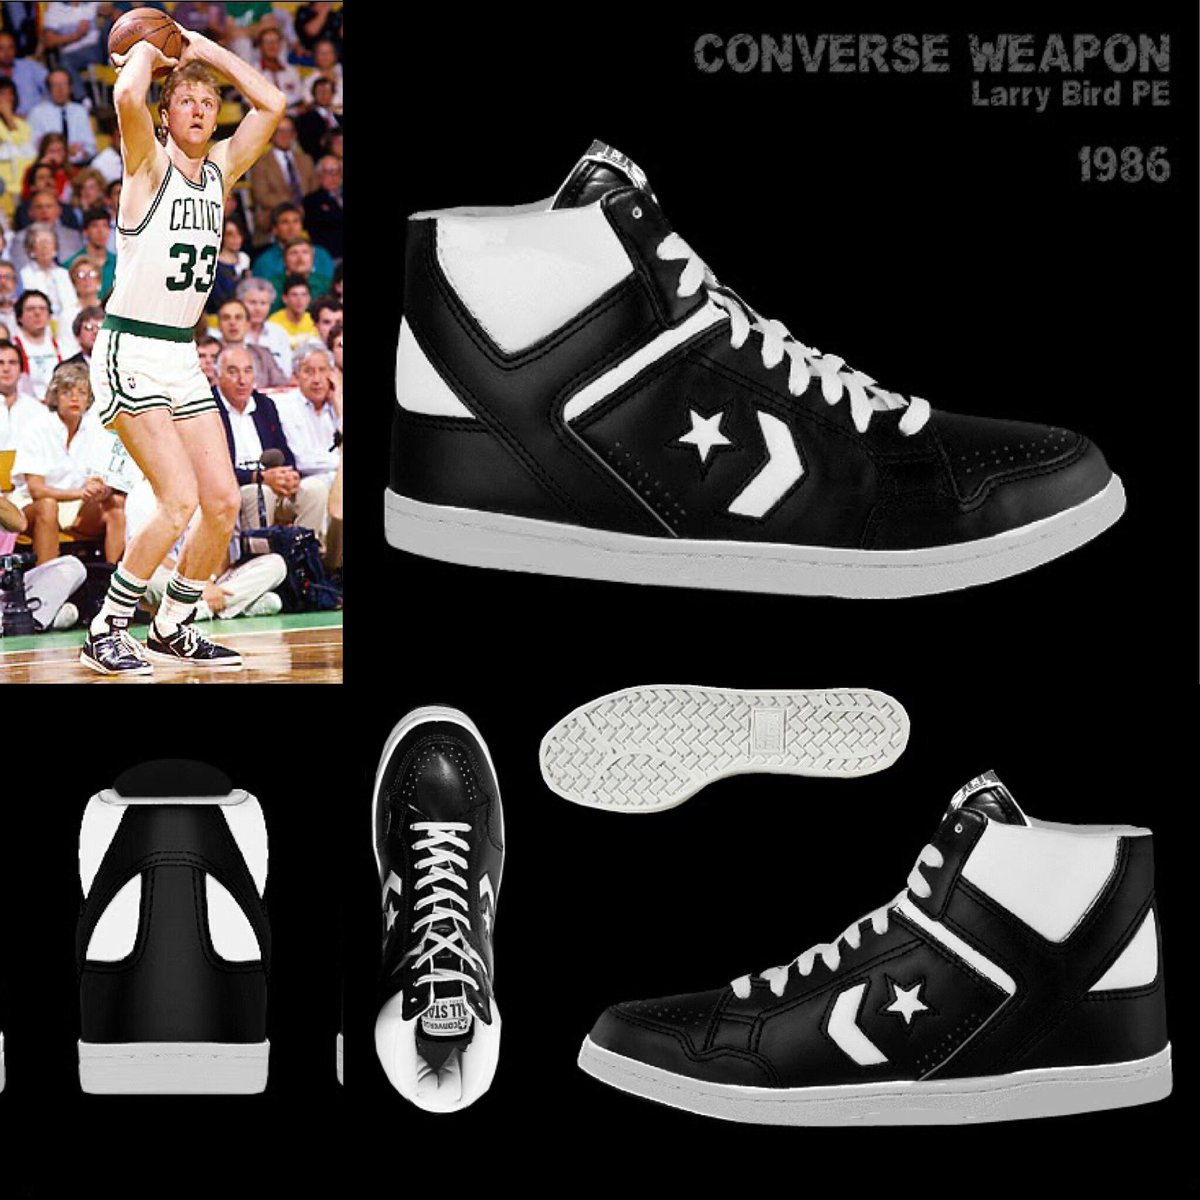 converse weapon hashtag on Twitter